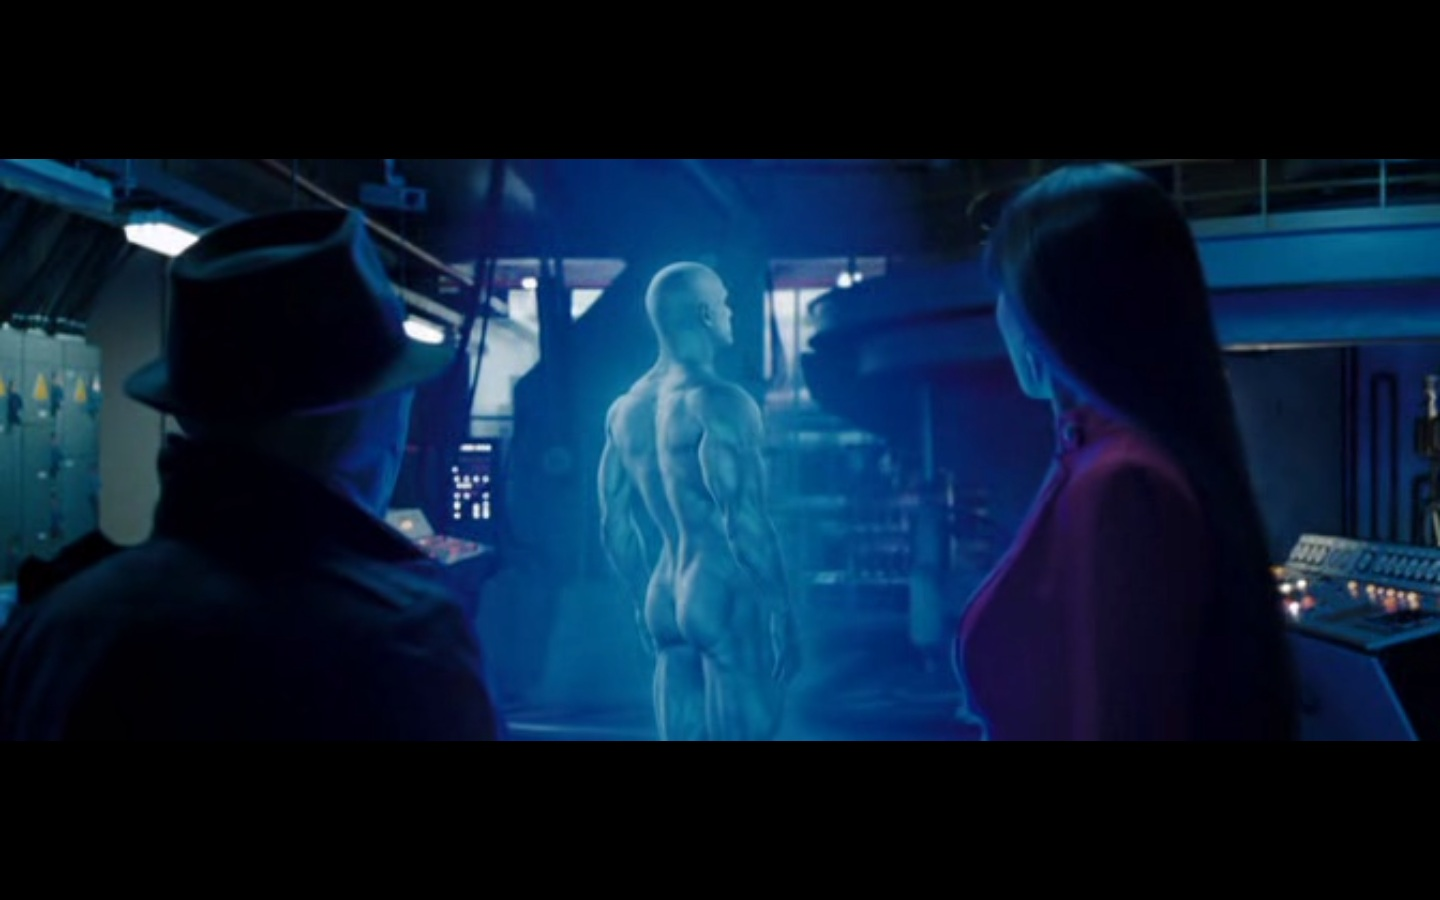 from Drew billy crudup watchmen naked